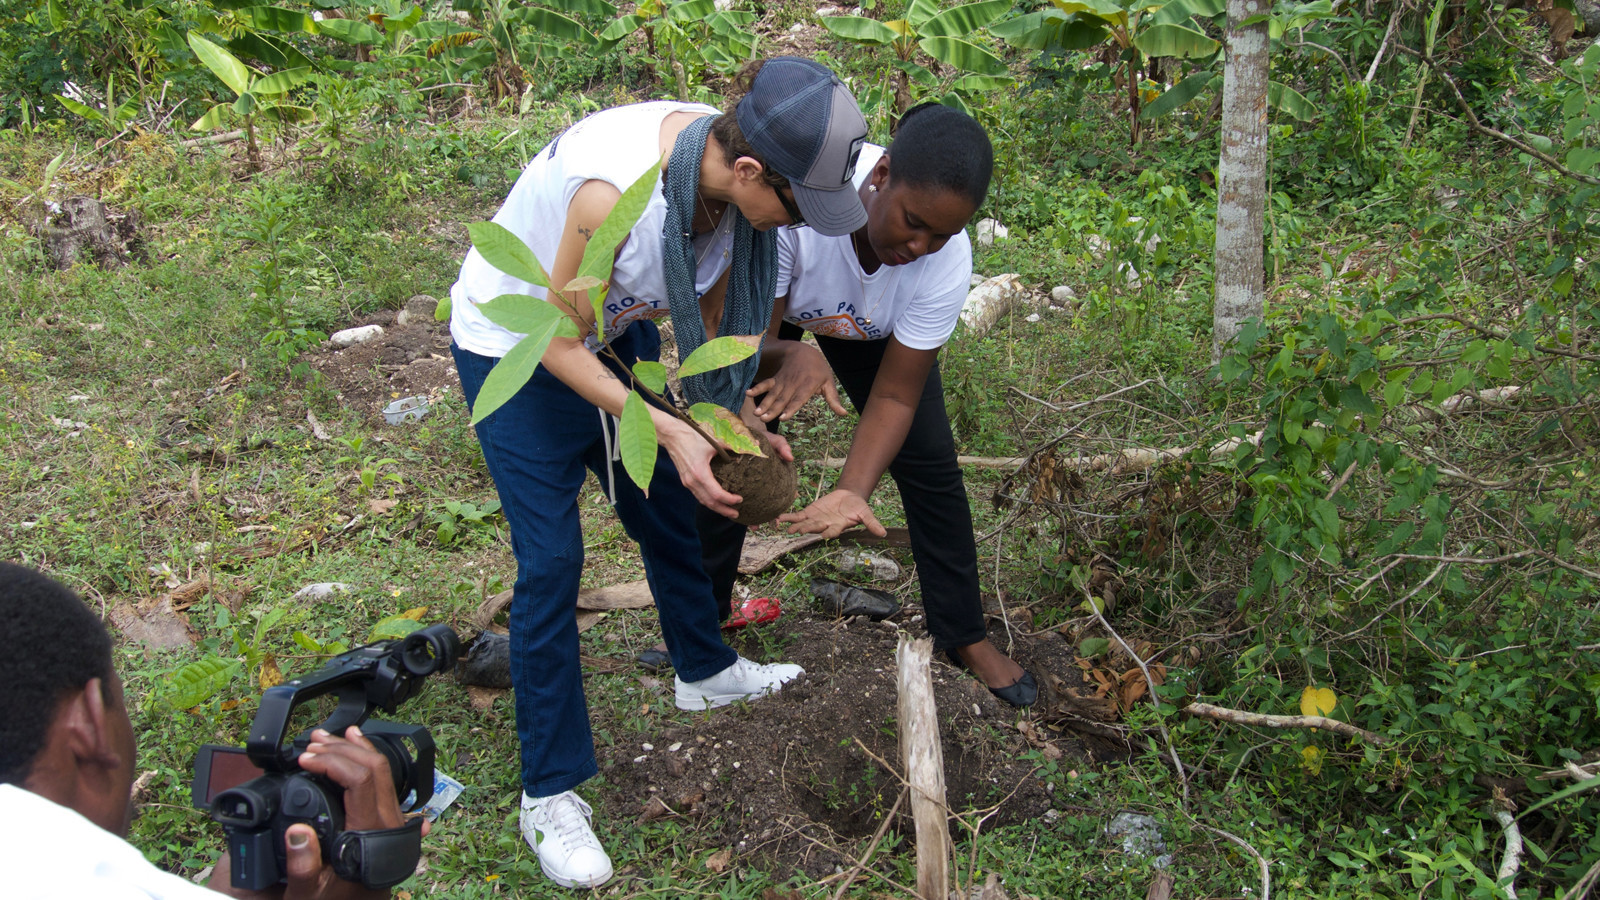 Chef Dominique Crenn, left, plants trees in Haiti as part of the Root Project.